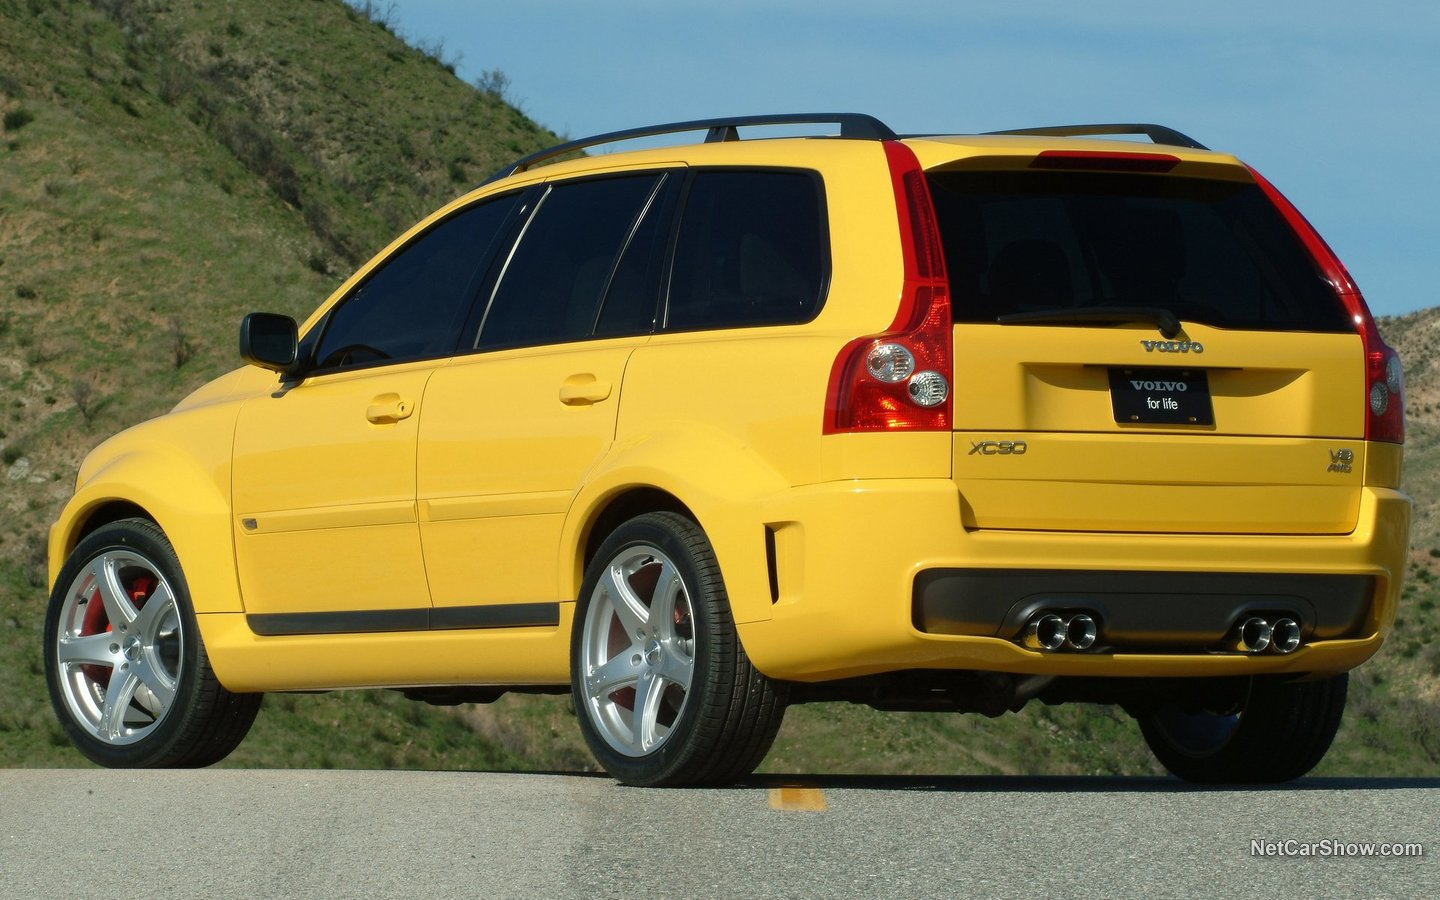 Volvo XC90 Supercharged V8 2005 8f73d0f6